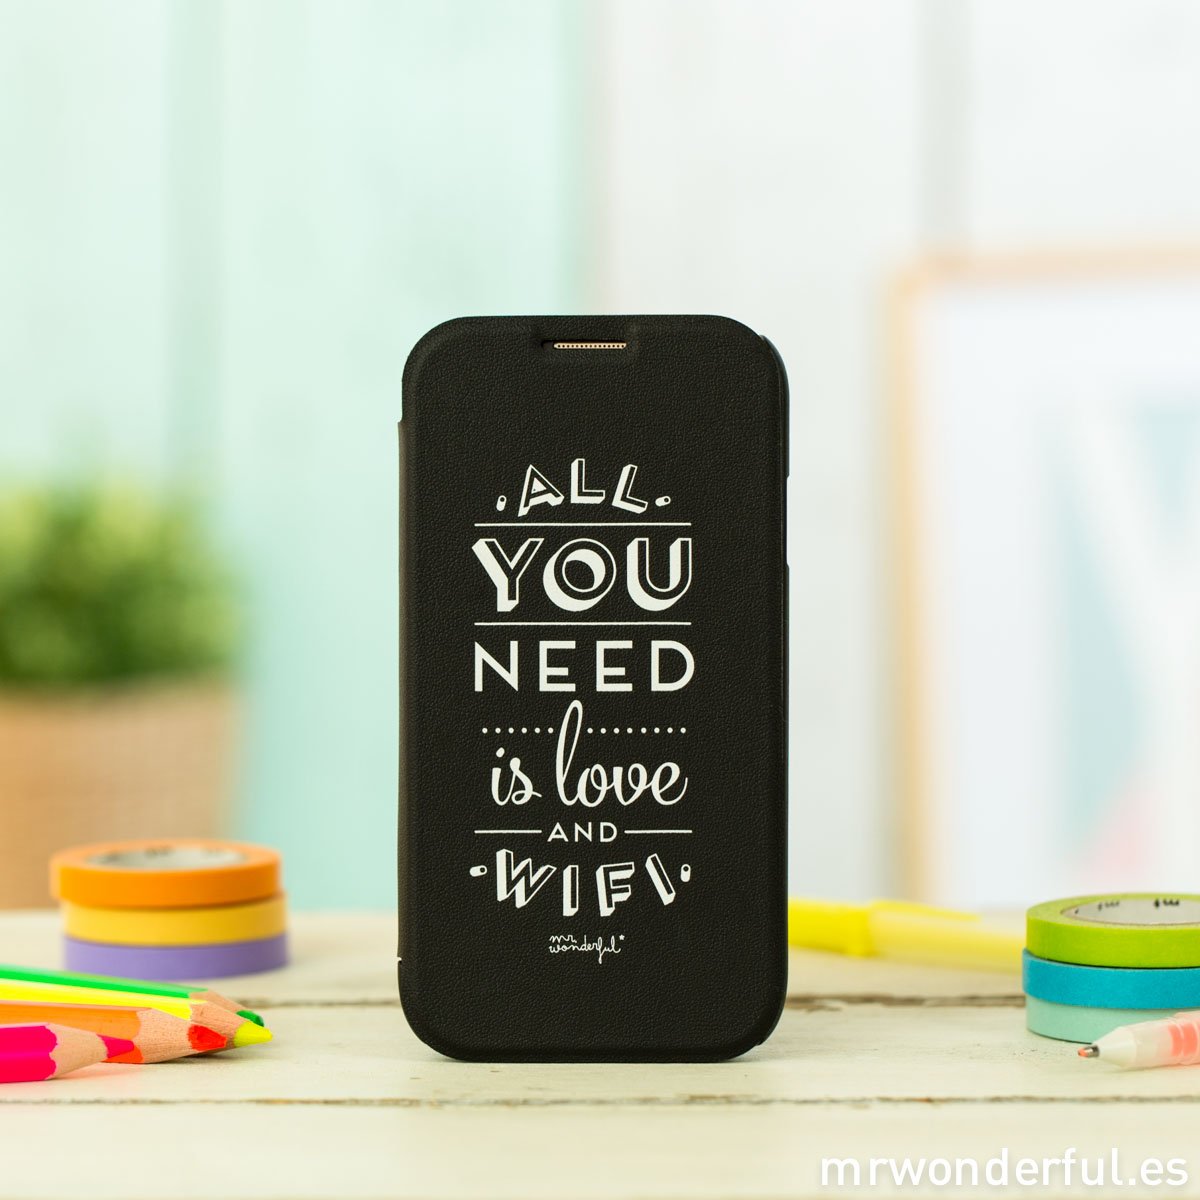 mrwonderful_MRFOL001_funda-negra-samsung-galaxy-S4_all-you-need-love-wifi-8